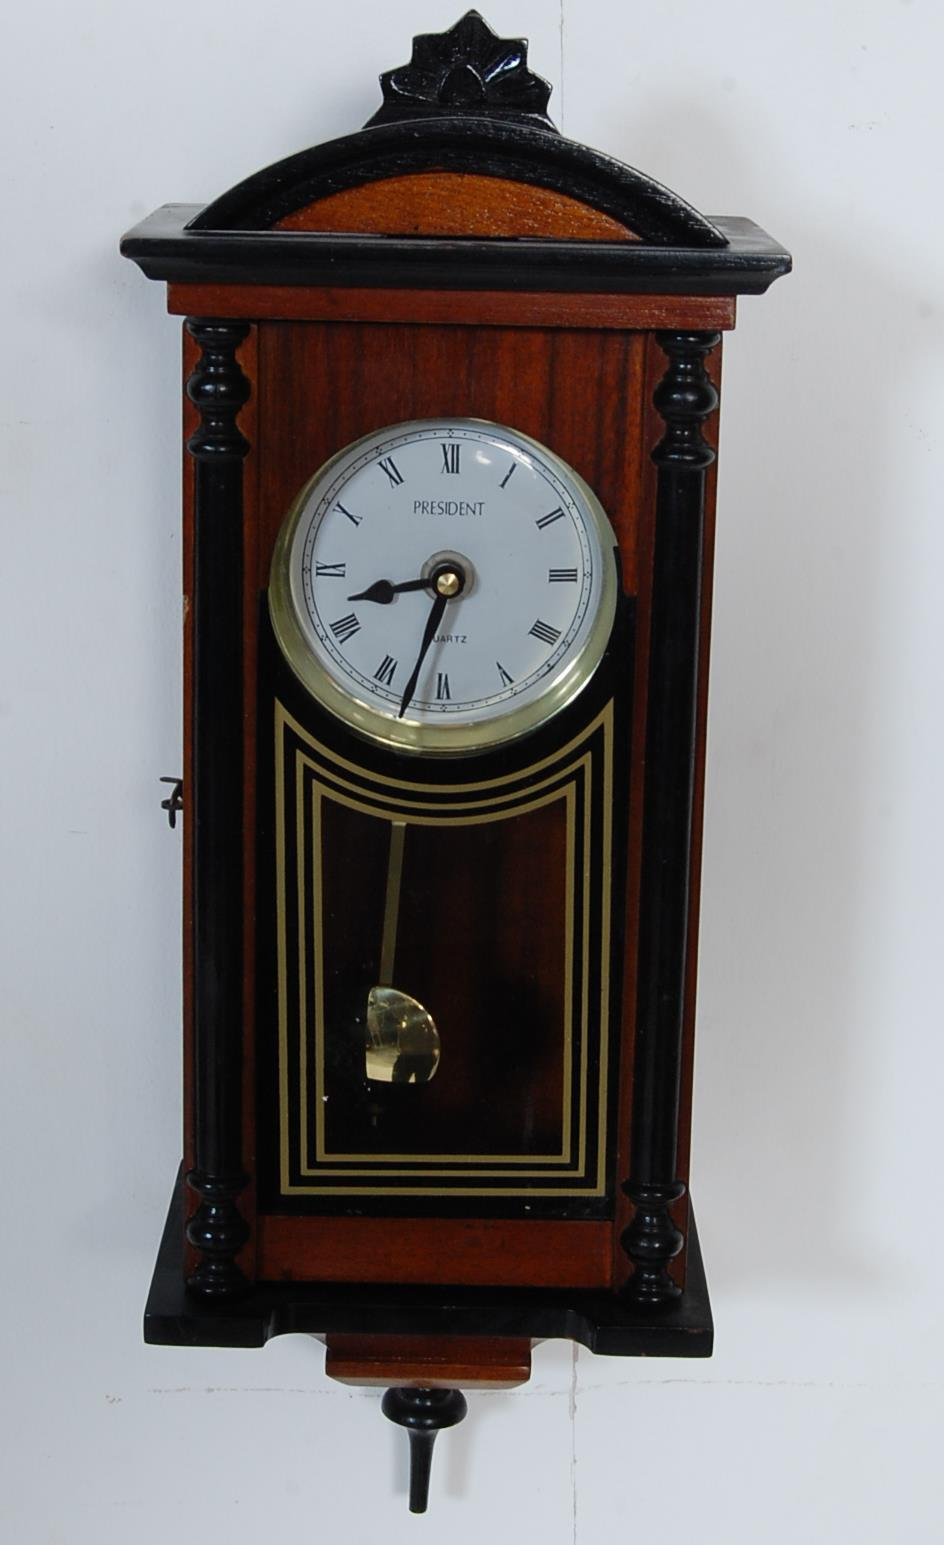 COLLECTION OF FOUR VINTAGE 20TH CENTURY WALL HANGING CLOCKS - Image 7 of 8